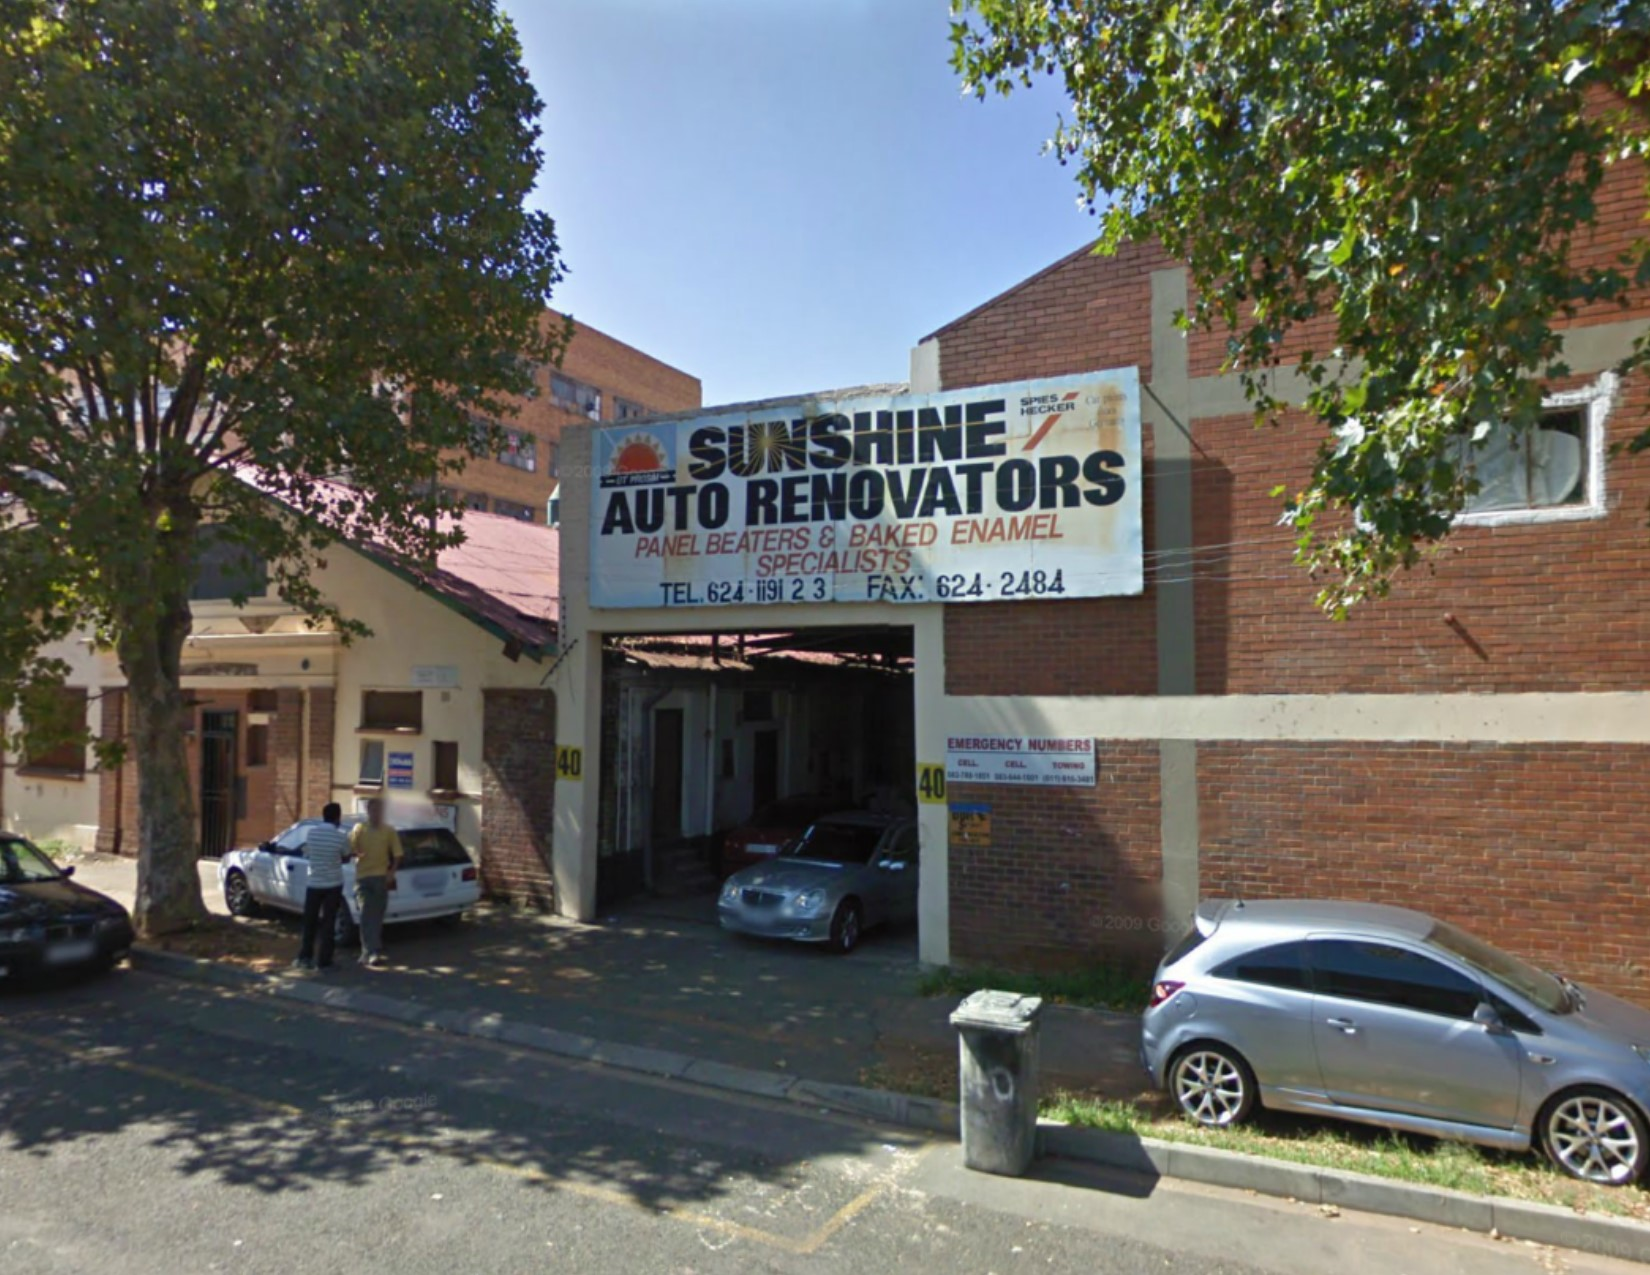 Sunshine Auto Renovators